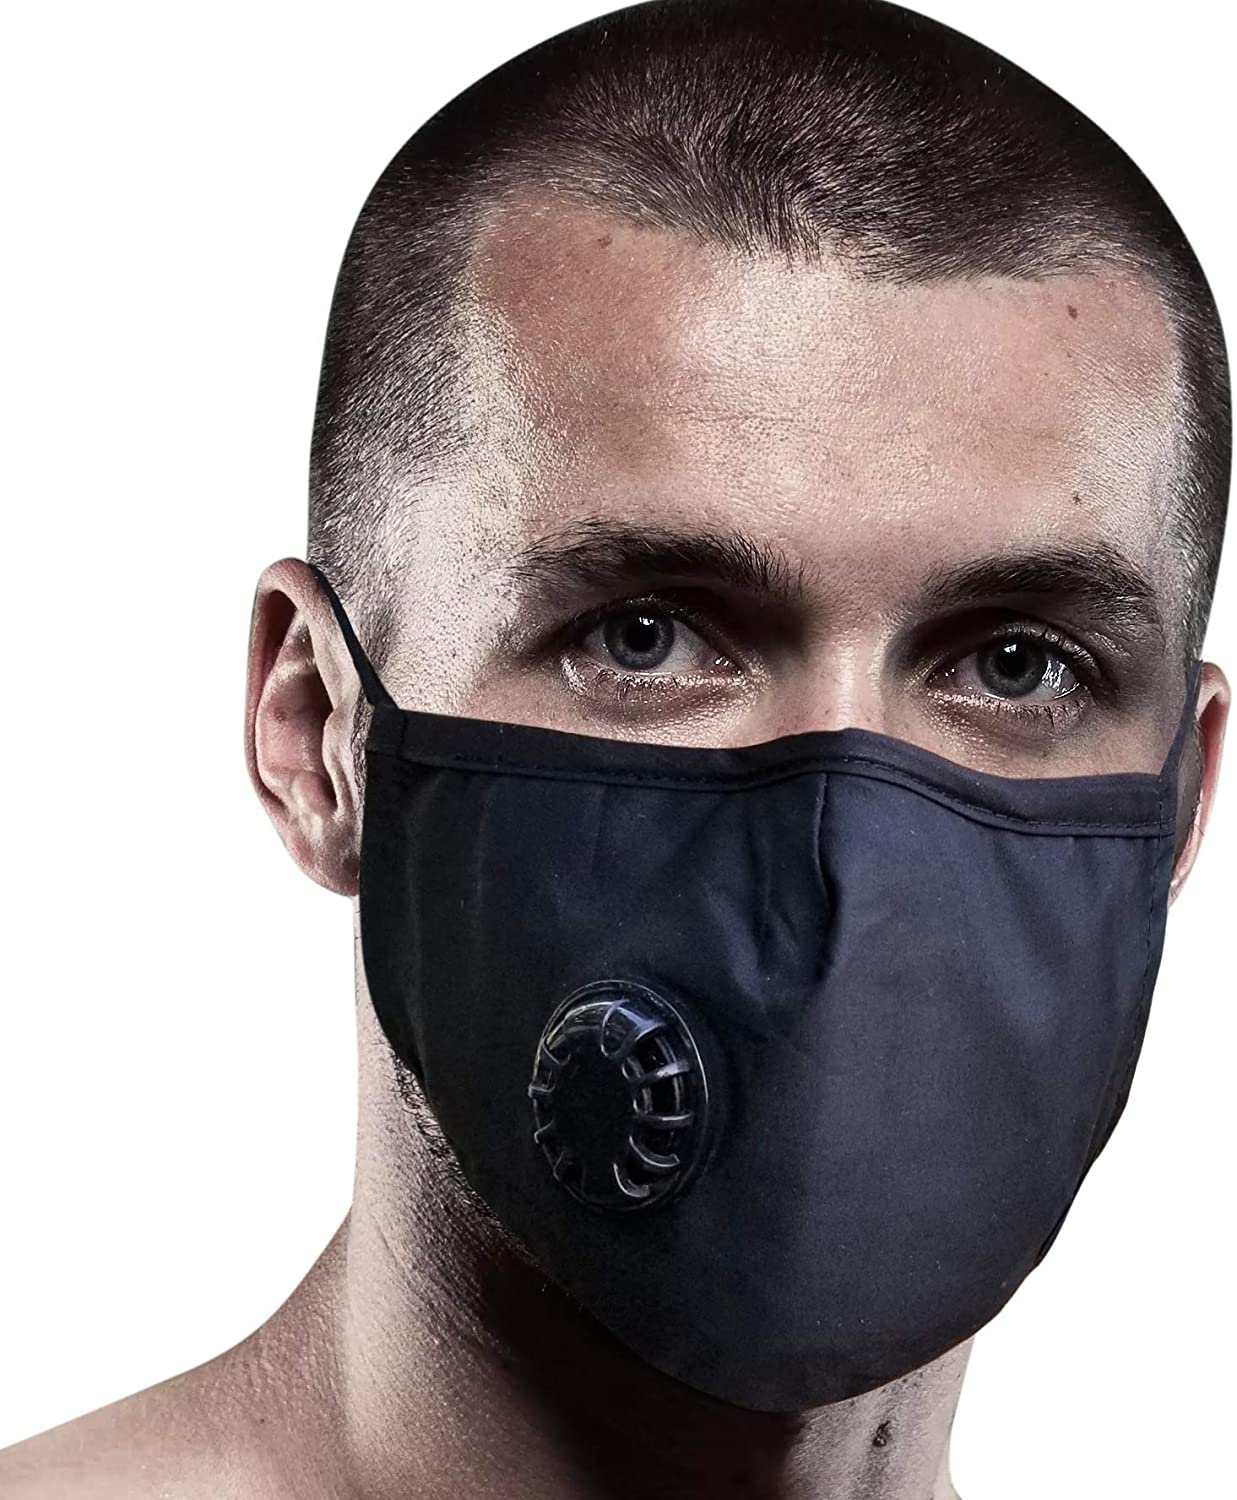 FIGHTECH Anti Pollution Mask with 4 Carbon Filters for Pollution Pollen Allergy Woodworking Mowing Running | Washable and Reusable Cotton Half Face Mask (Extra Large, Black)